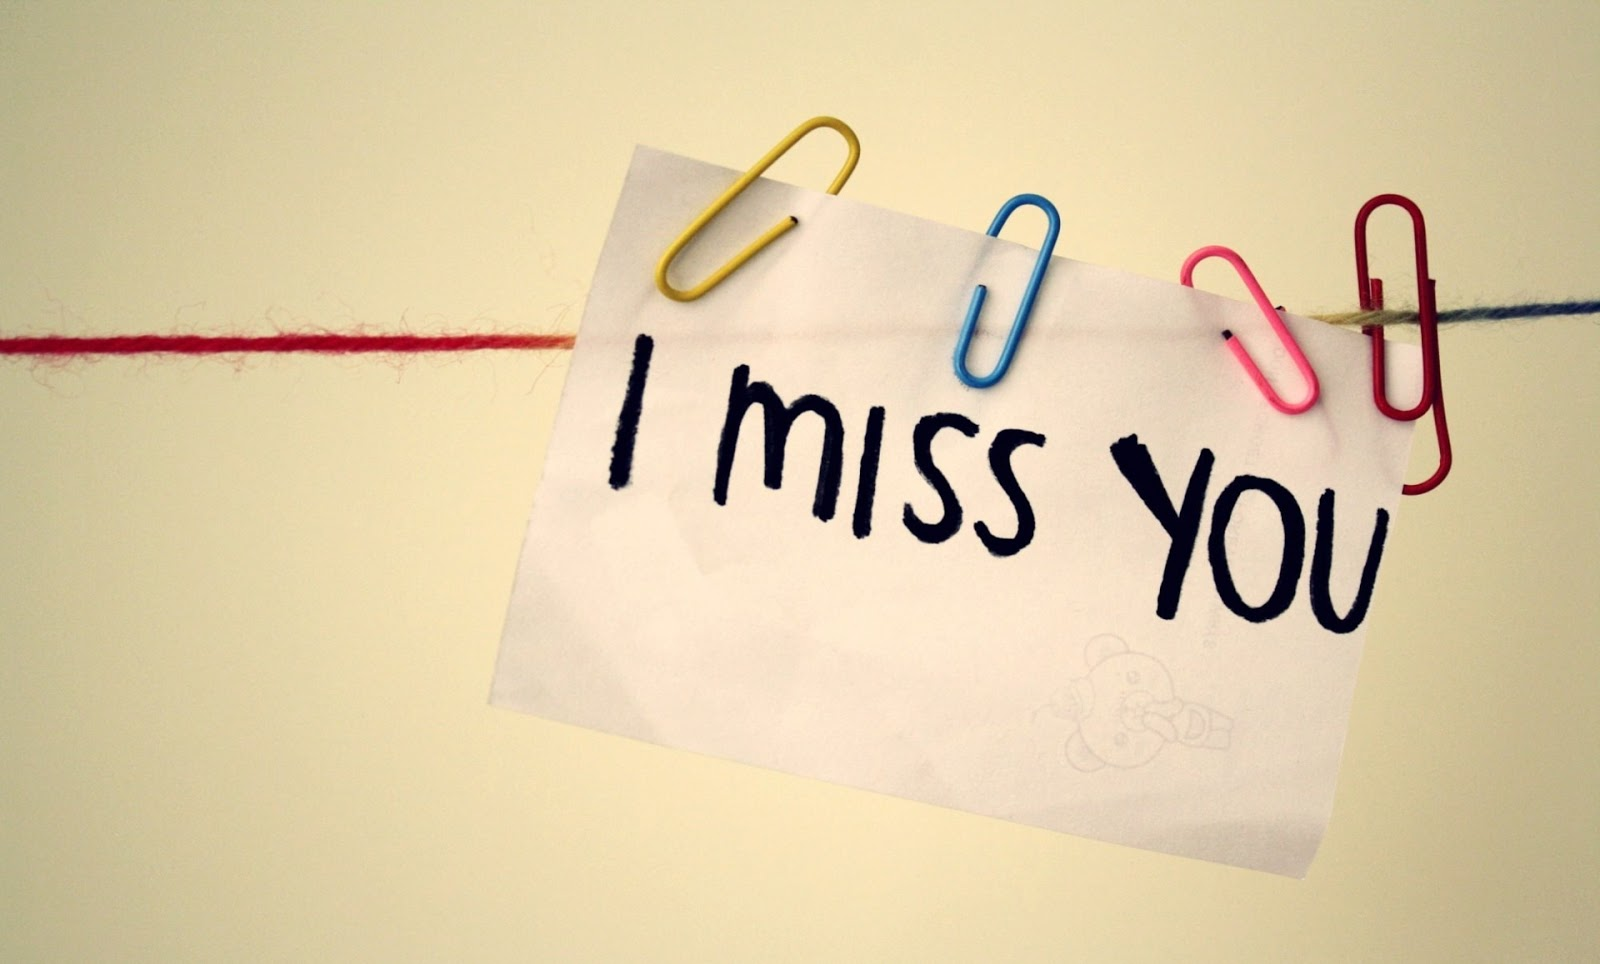 I Miss You HD Wallpaper New